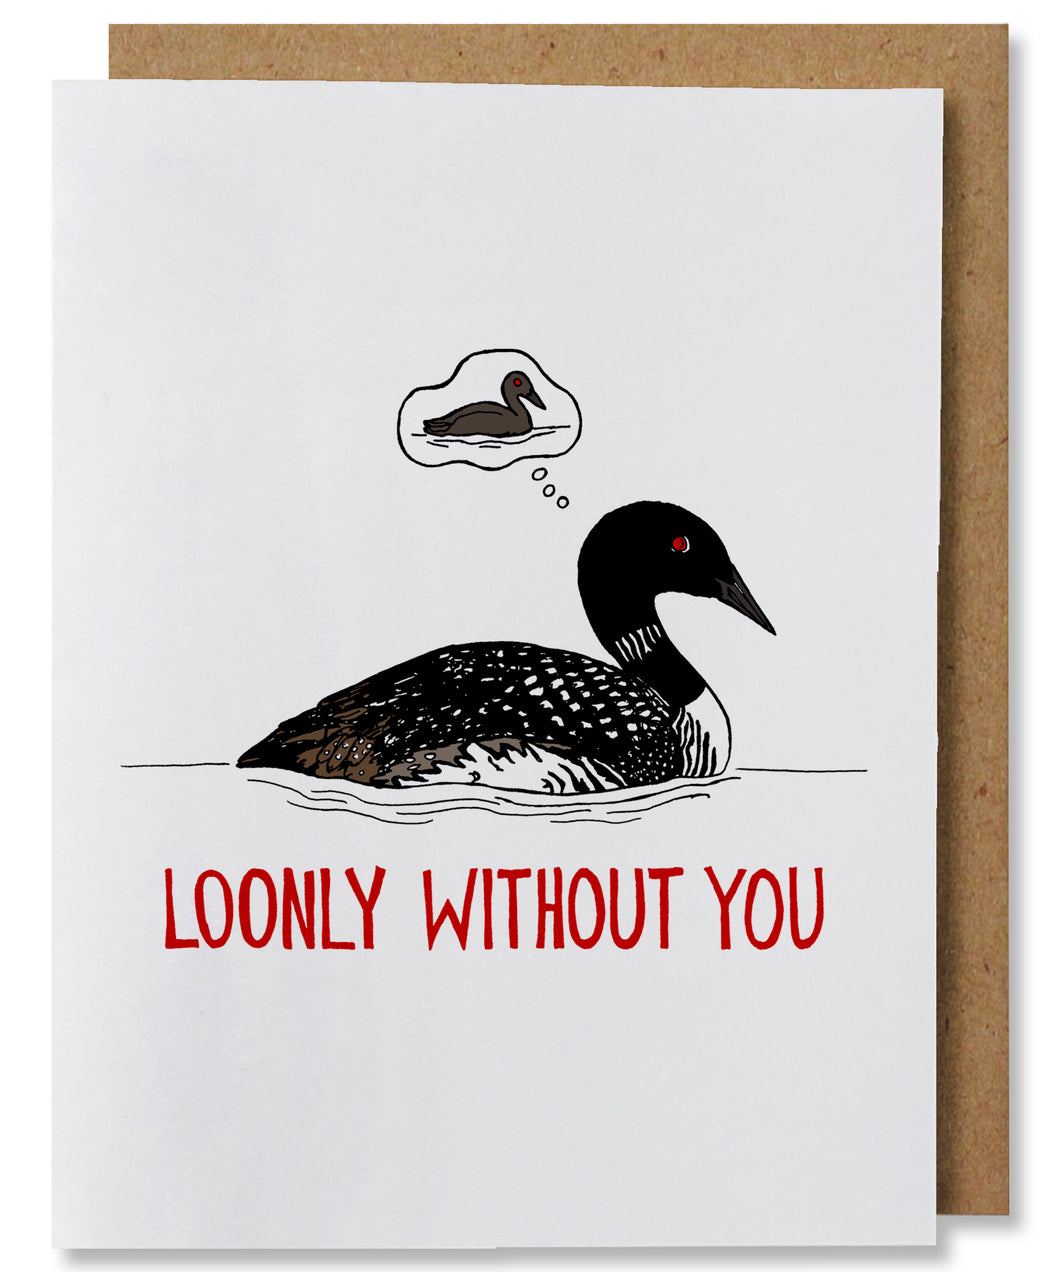 Loonly Without You